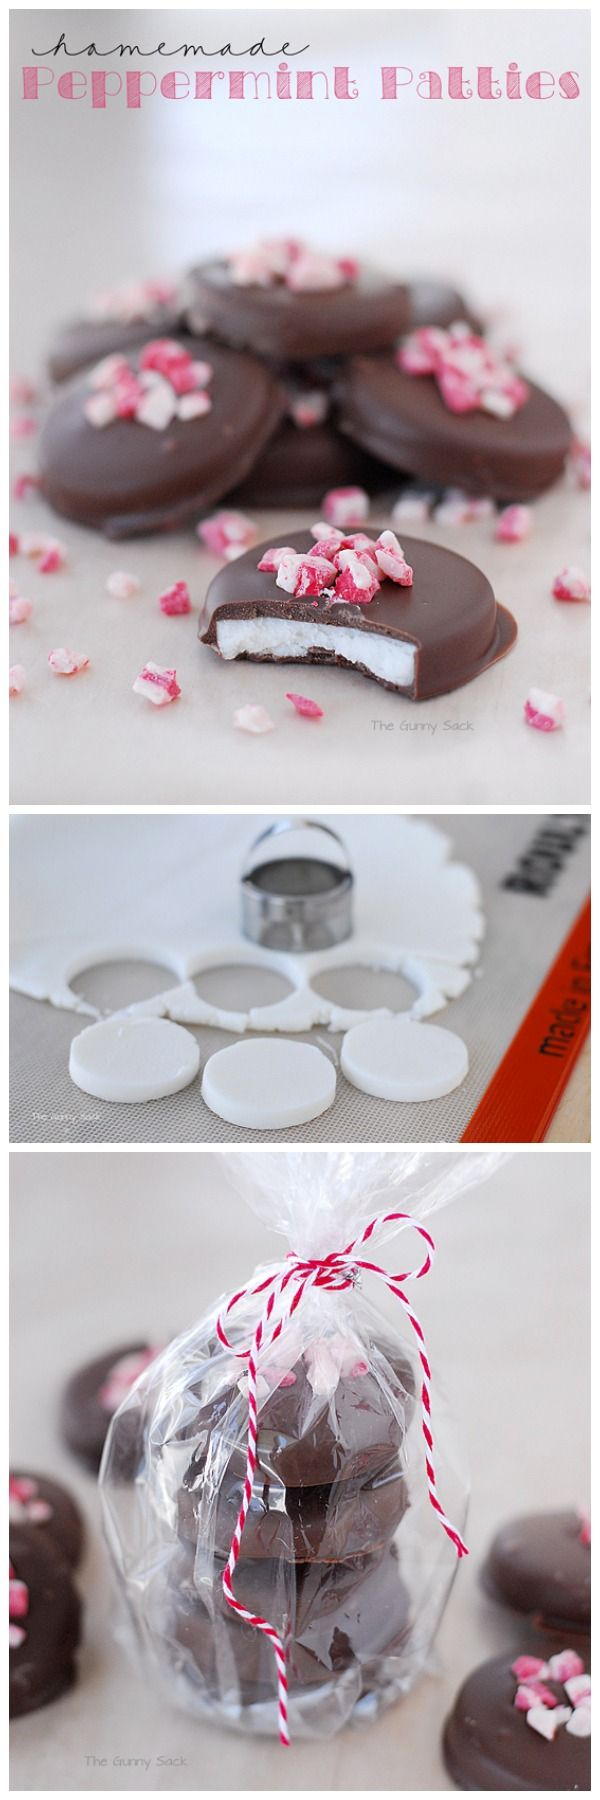 #DIY #Homemade Peppermint Patties are so easy to make and they are so good! This classic treat is a perfect gift from the kitchen. http://www.kidsdinge.com      https://www.facebook.com/pages/kidsdingecom-Origineel-speelgoed-hebbedingen-voor-hippe-kids/160122710686387?sk=wall  http://instagram.com/kidsdinge